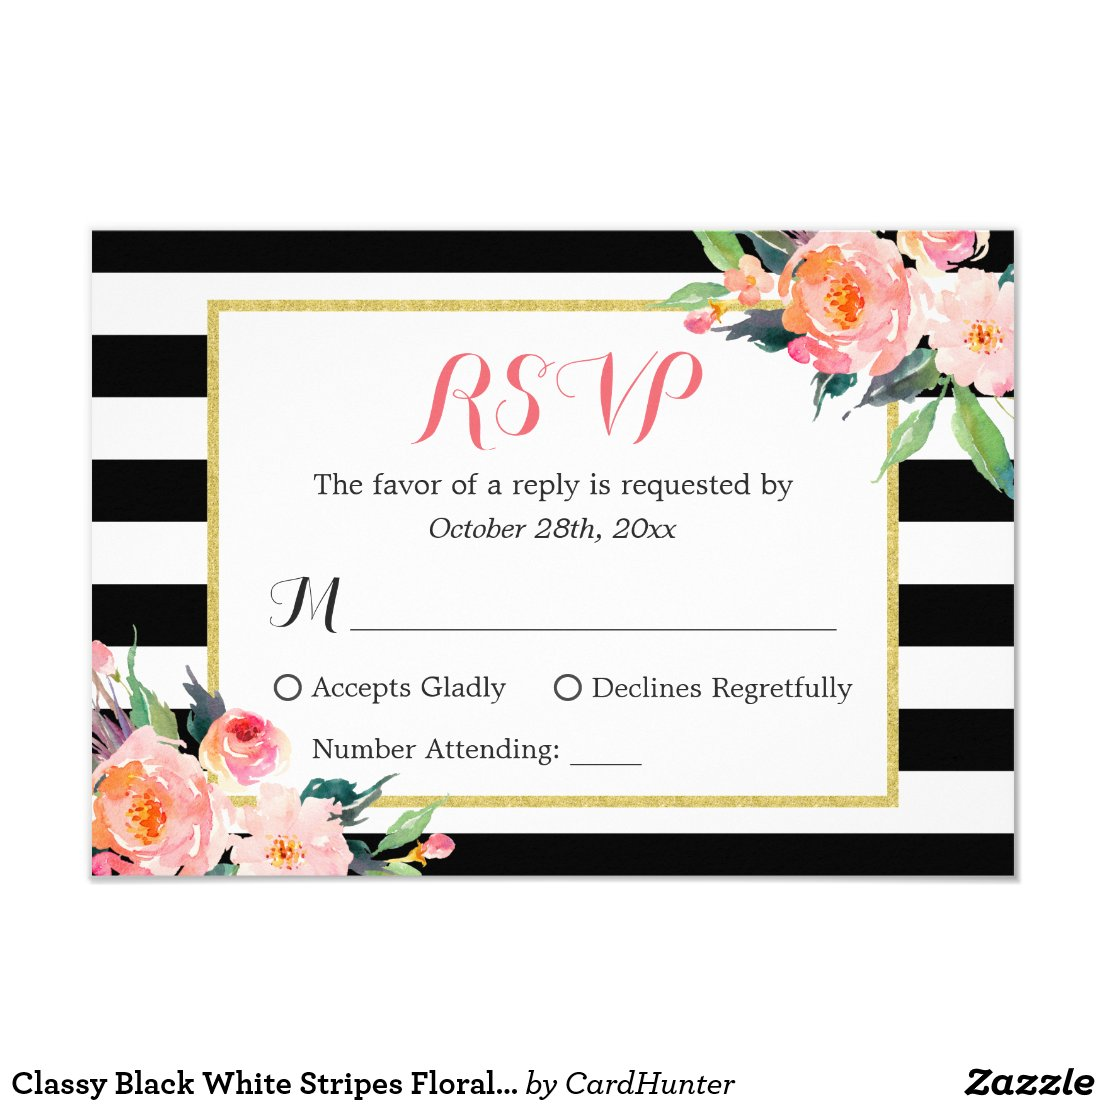 Classy Black White Stripes Floral RSVP Reply Card